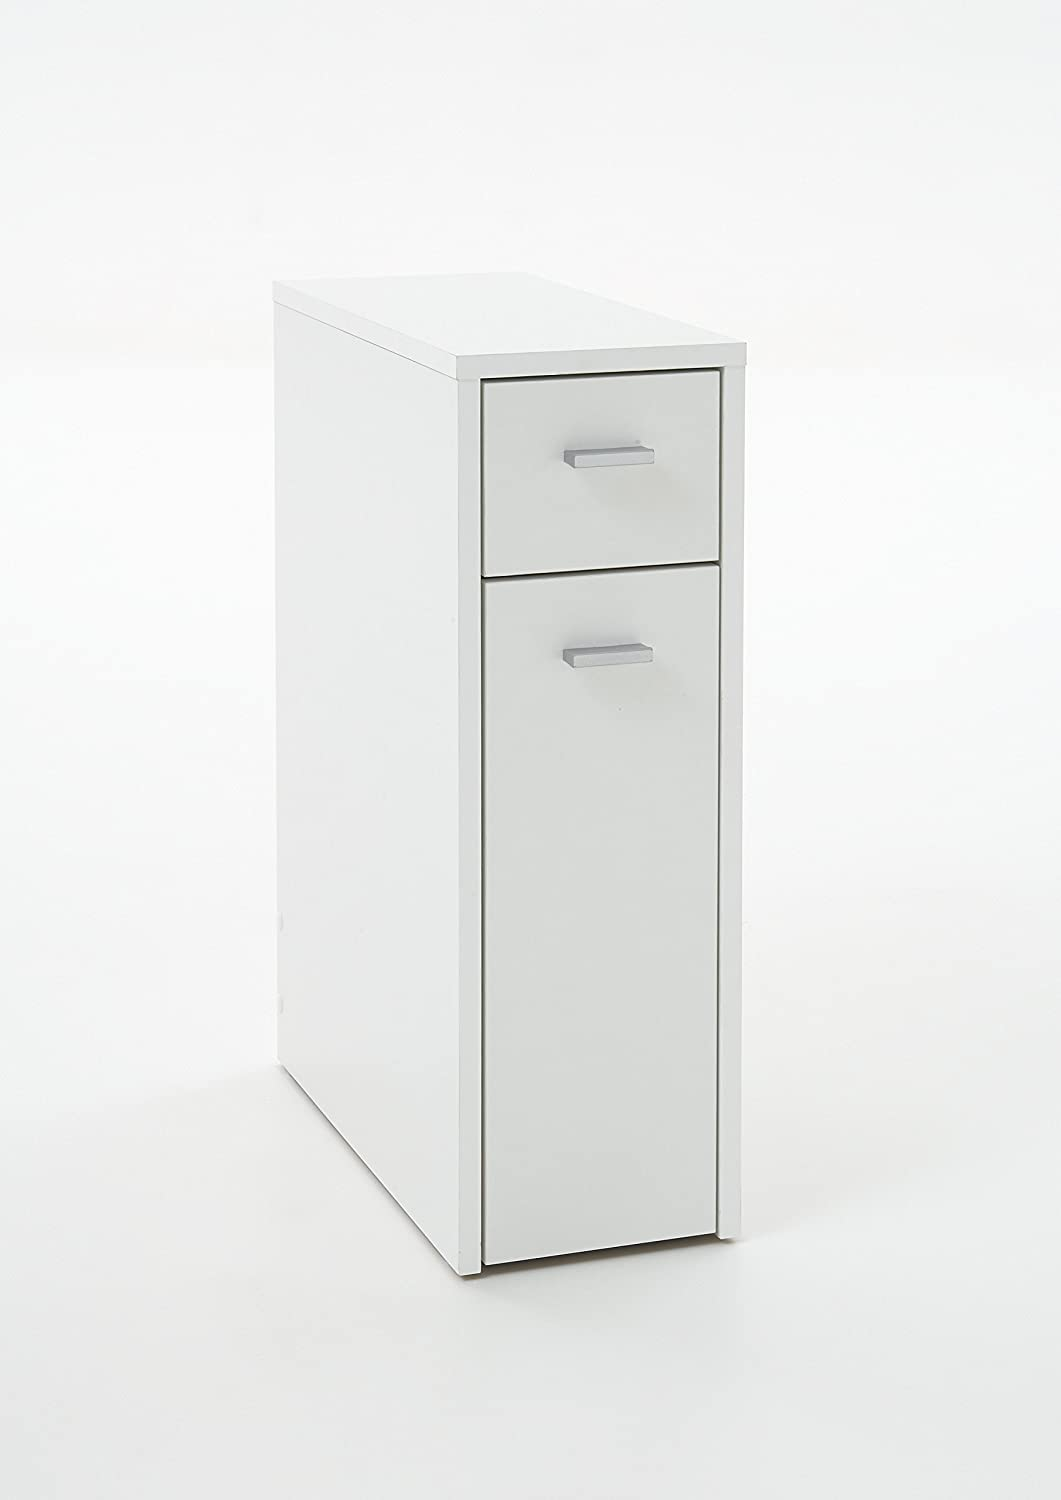 SALANCA Premium Bathroom/Kitchen Storage Cupboard Cabinet Unit in White Small Drawer u0026 Large Pull-Out Storage Cupboard Amazon.co.uk Kitchen u0026 Home & SALANCA Premium Bathroom/Kitchen Storage Cupboard Cabinet Unit in ...